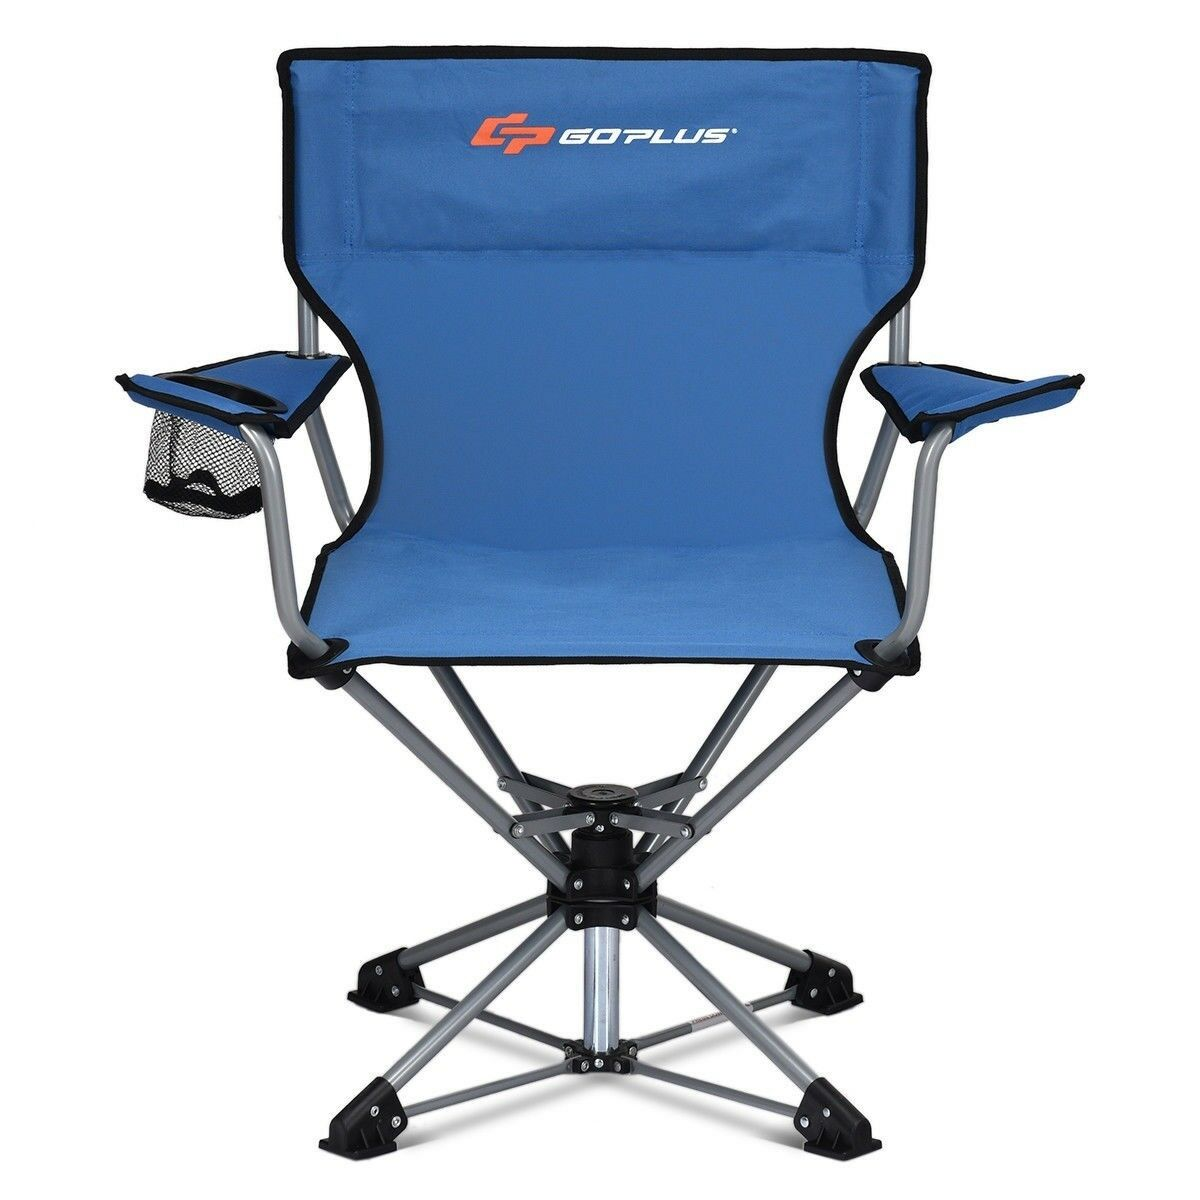 Swivel Outdoor Camping Chair Collapsible Folding Hiking Fishing 360° redation US